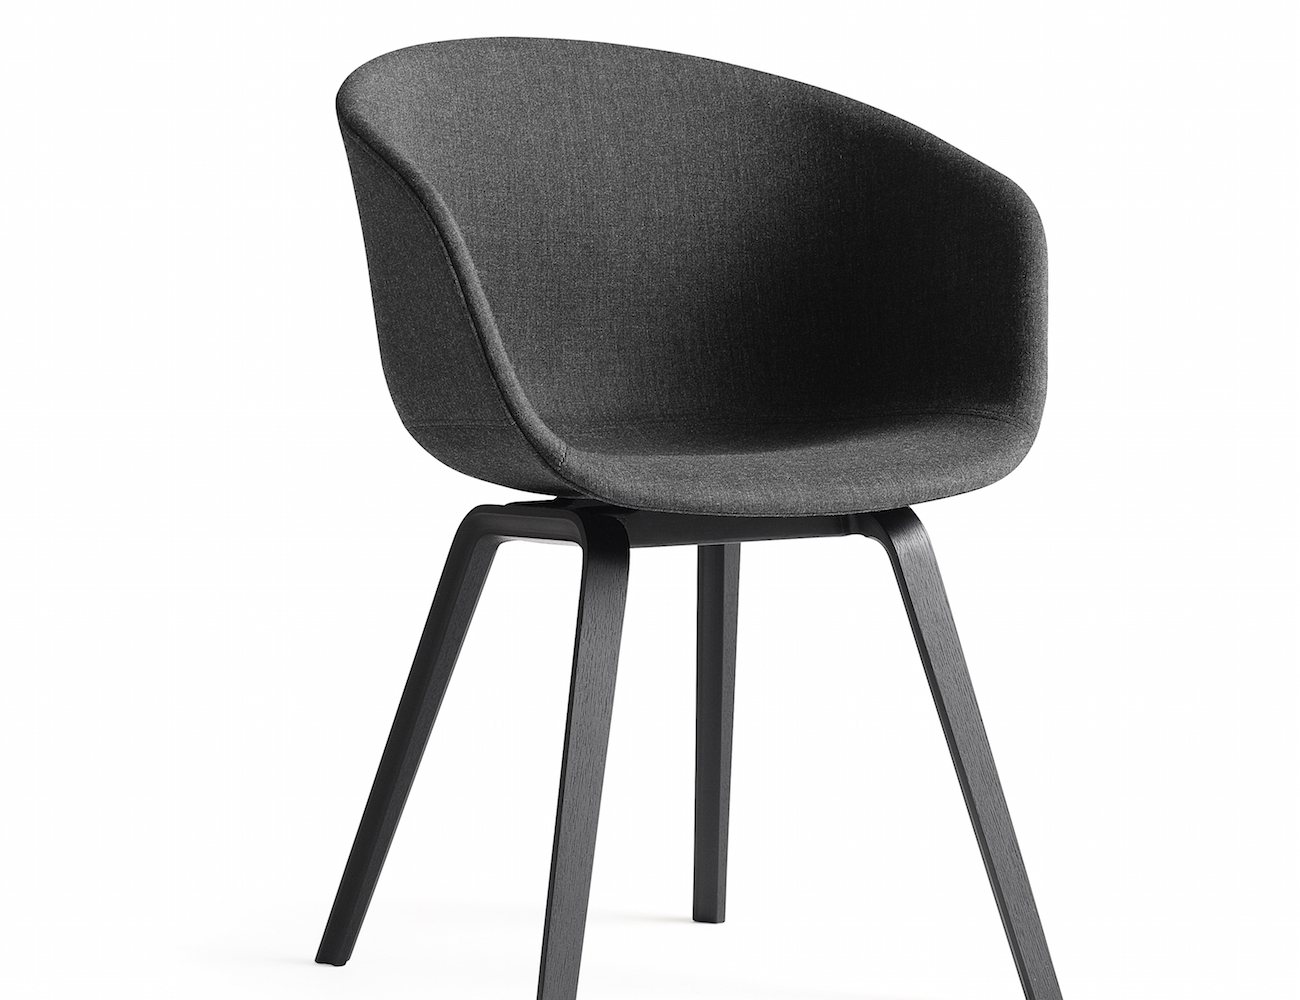 About A Chair By Hay